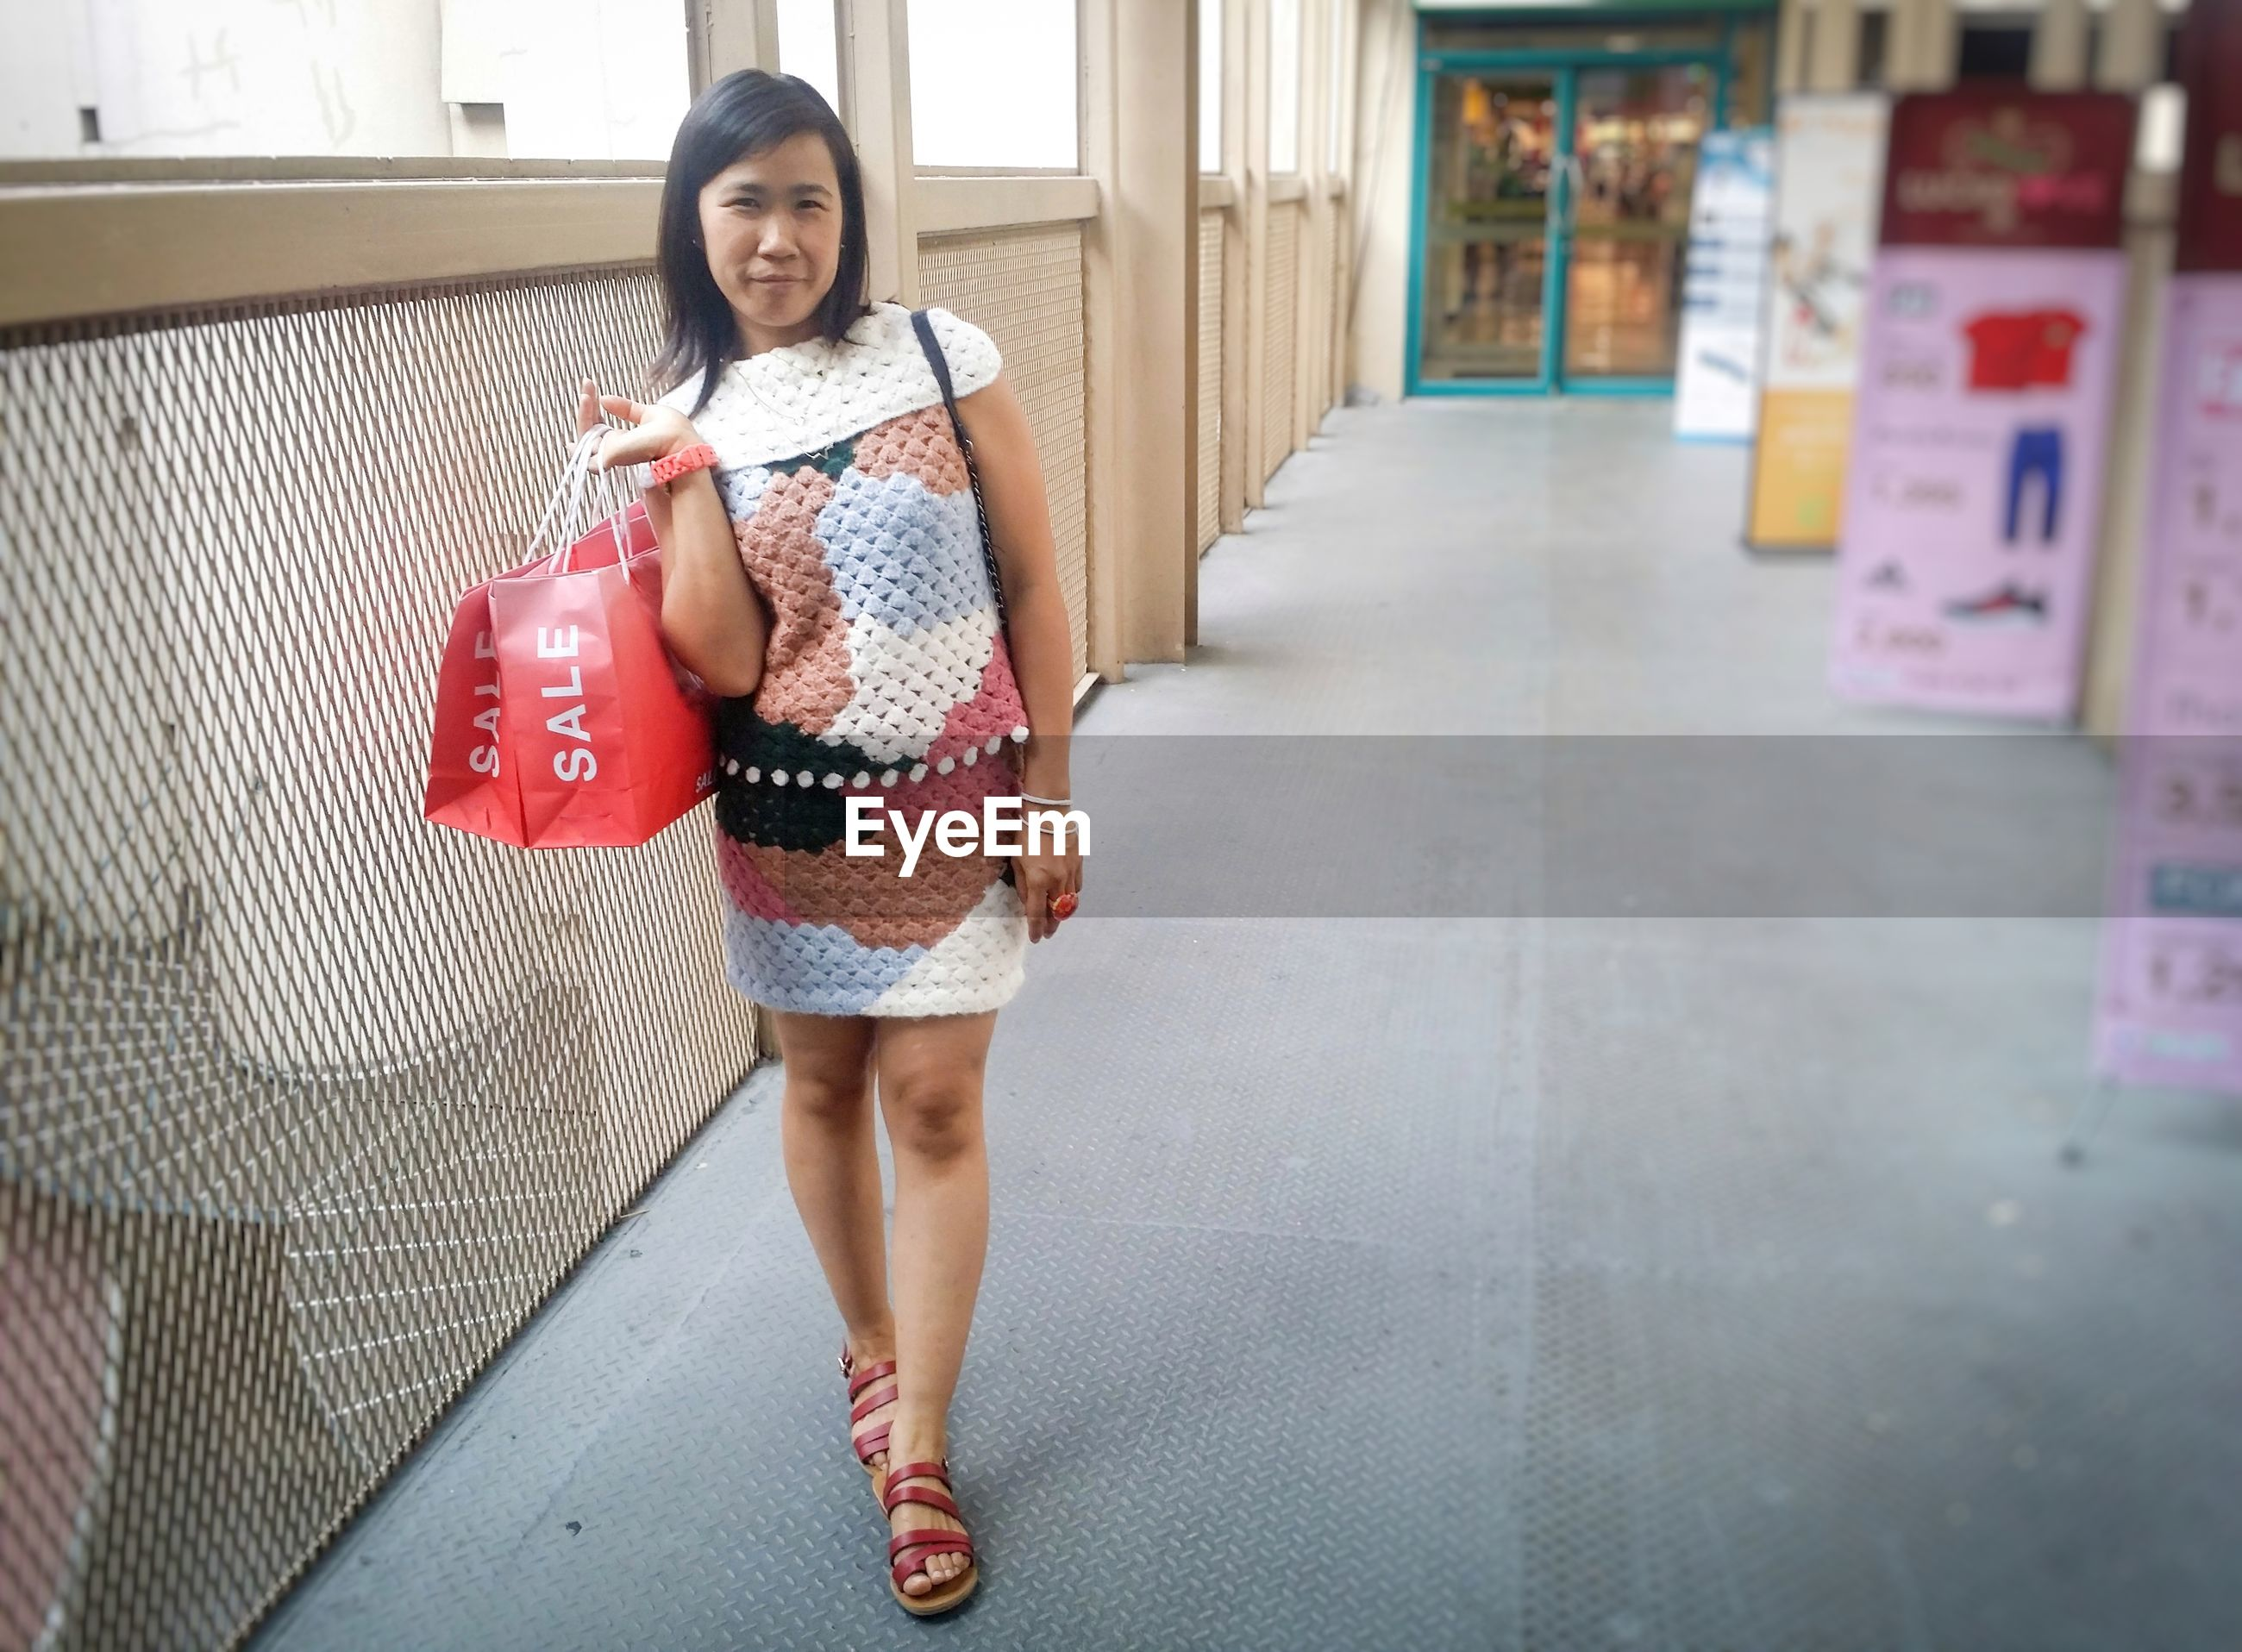 Portrait of woman with shopping bag standing in mall